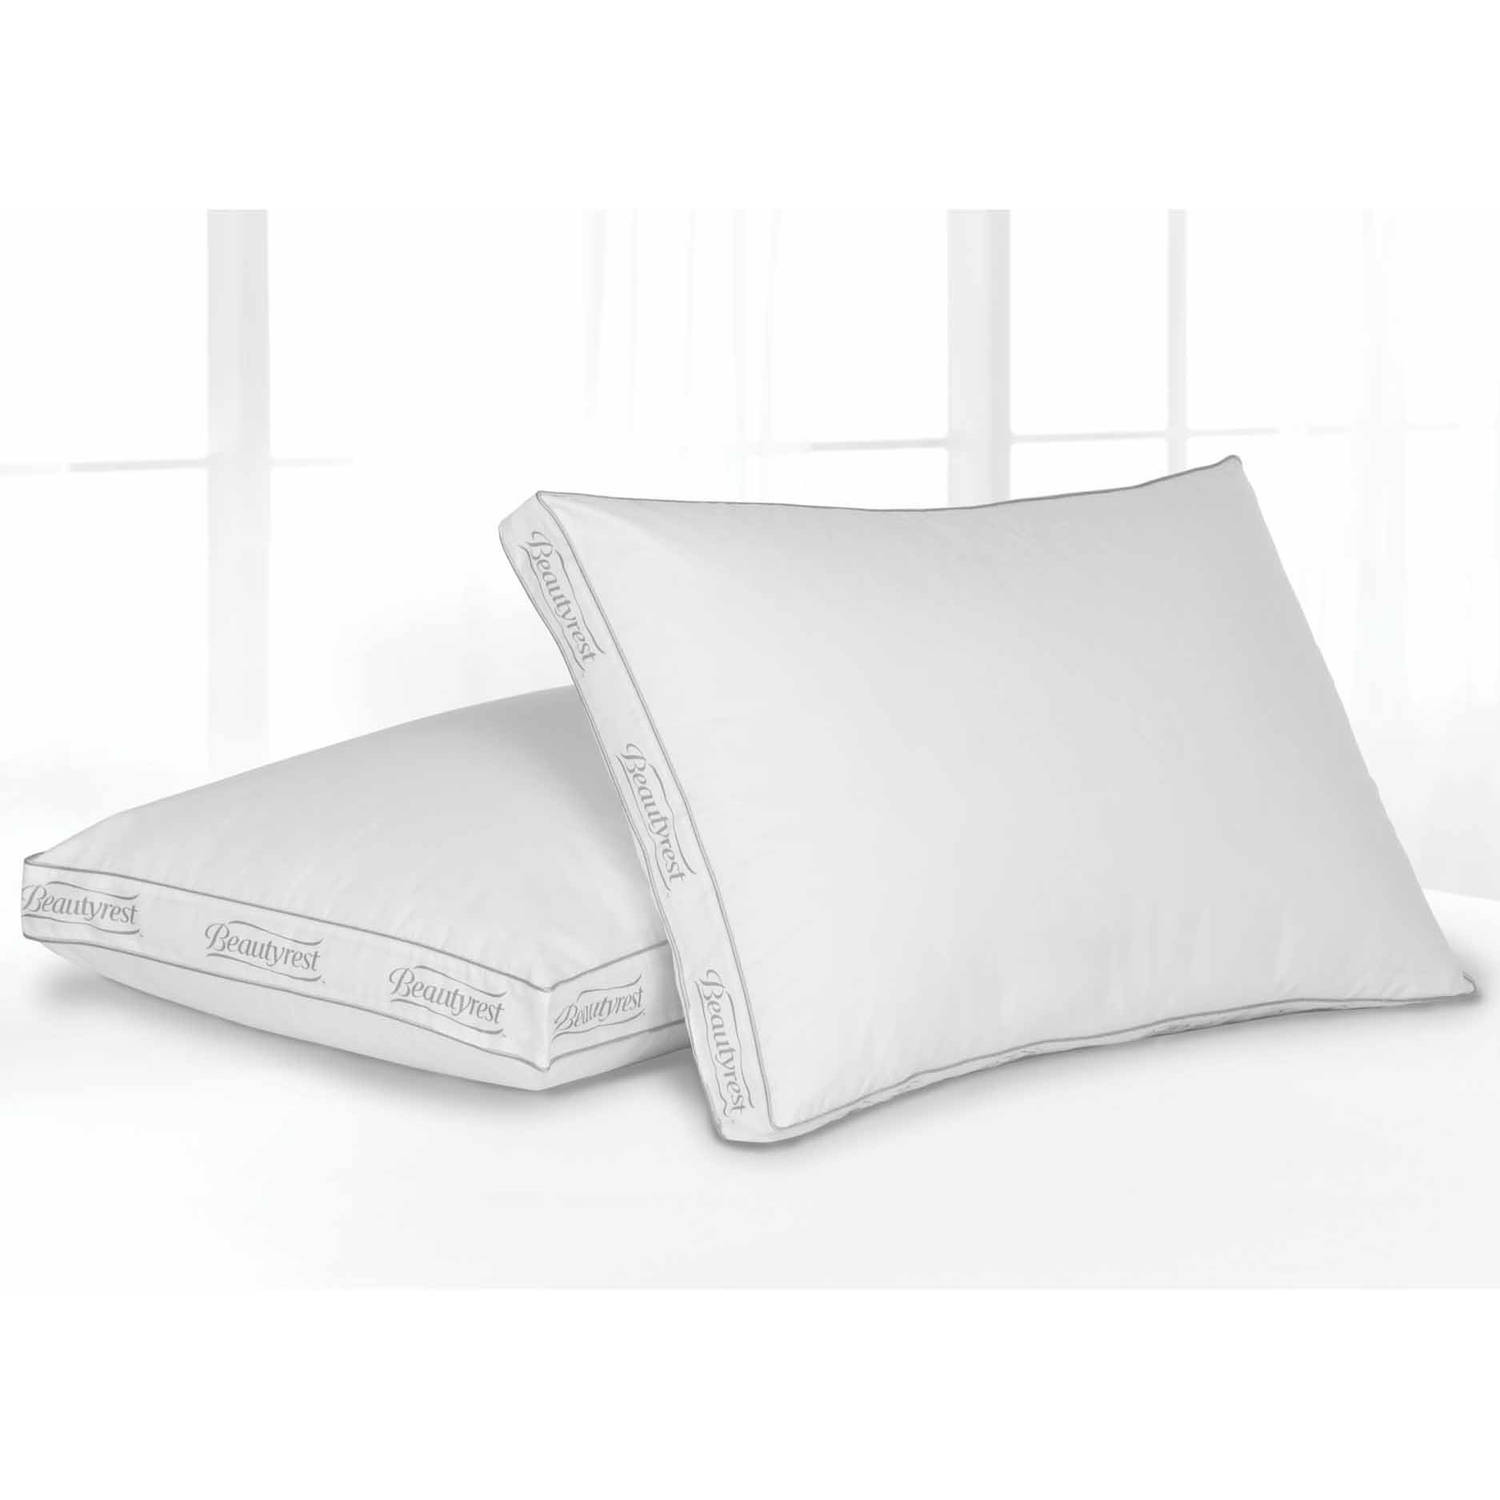 Beautyrest Luxury Power Extra Firm Pillow Multiple Sizes